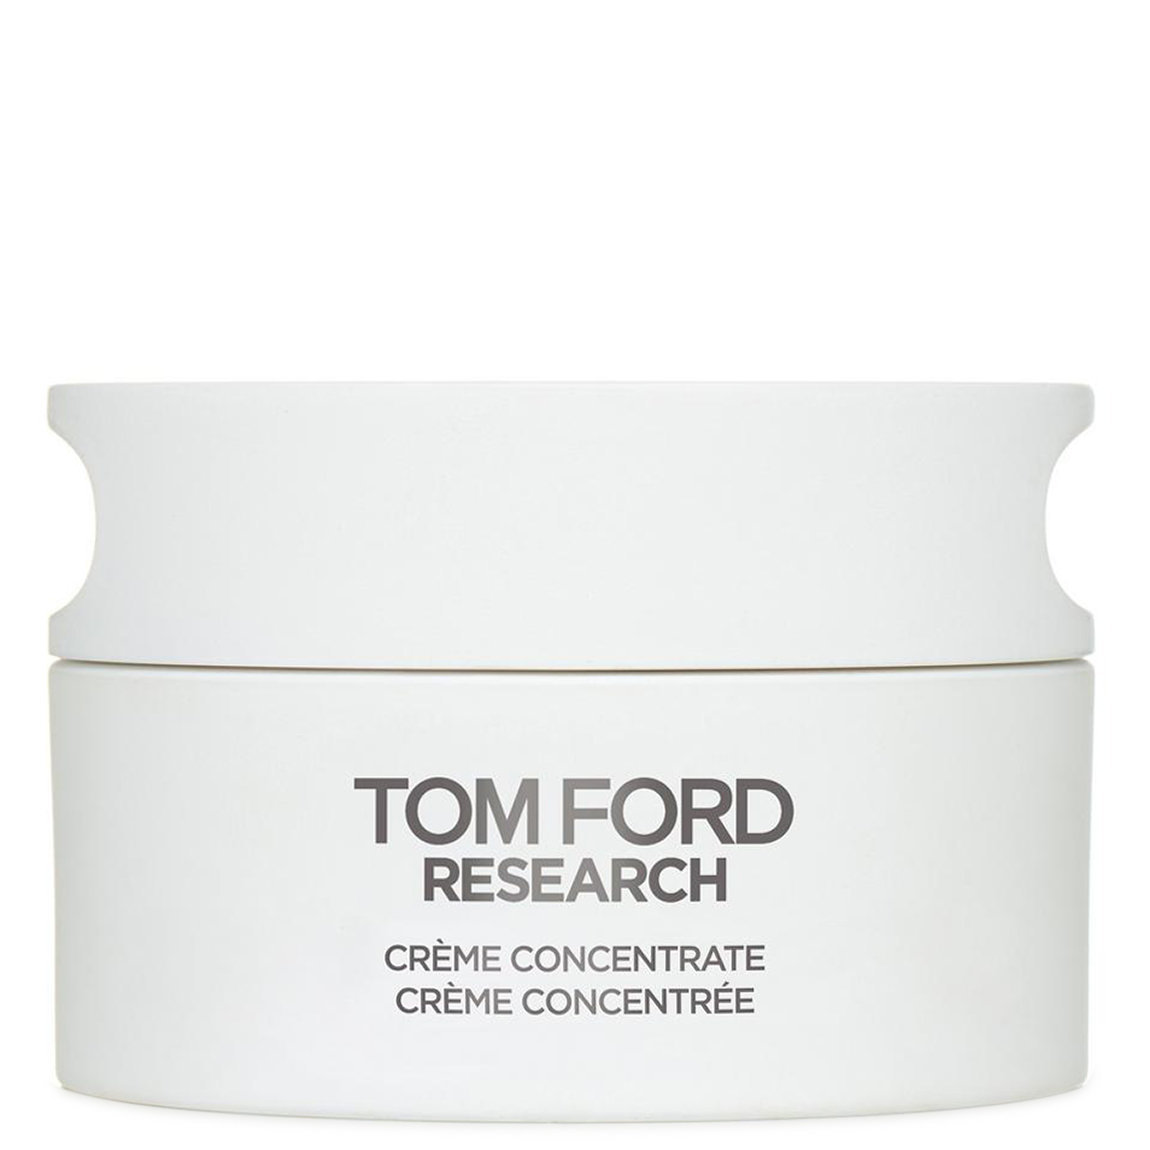 TOM FORD Research Creme Concentrate product swatch.